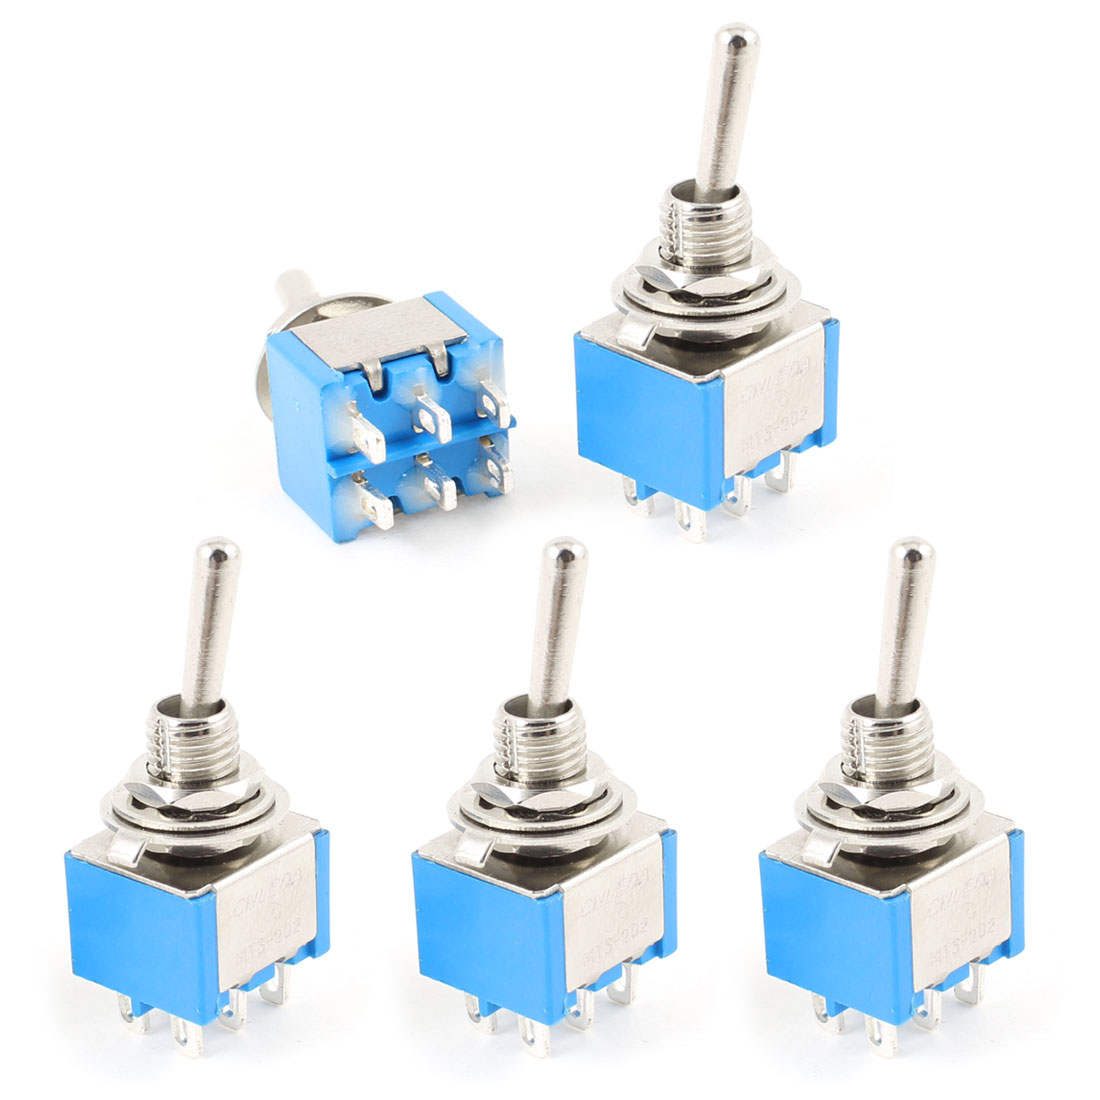 5 Pcs AC250V/3A AC120V/6A ON/ON 2 Ways DPDT 6P Locking Toggle Switch